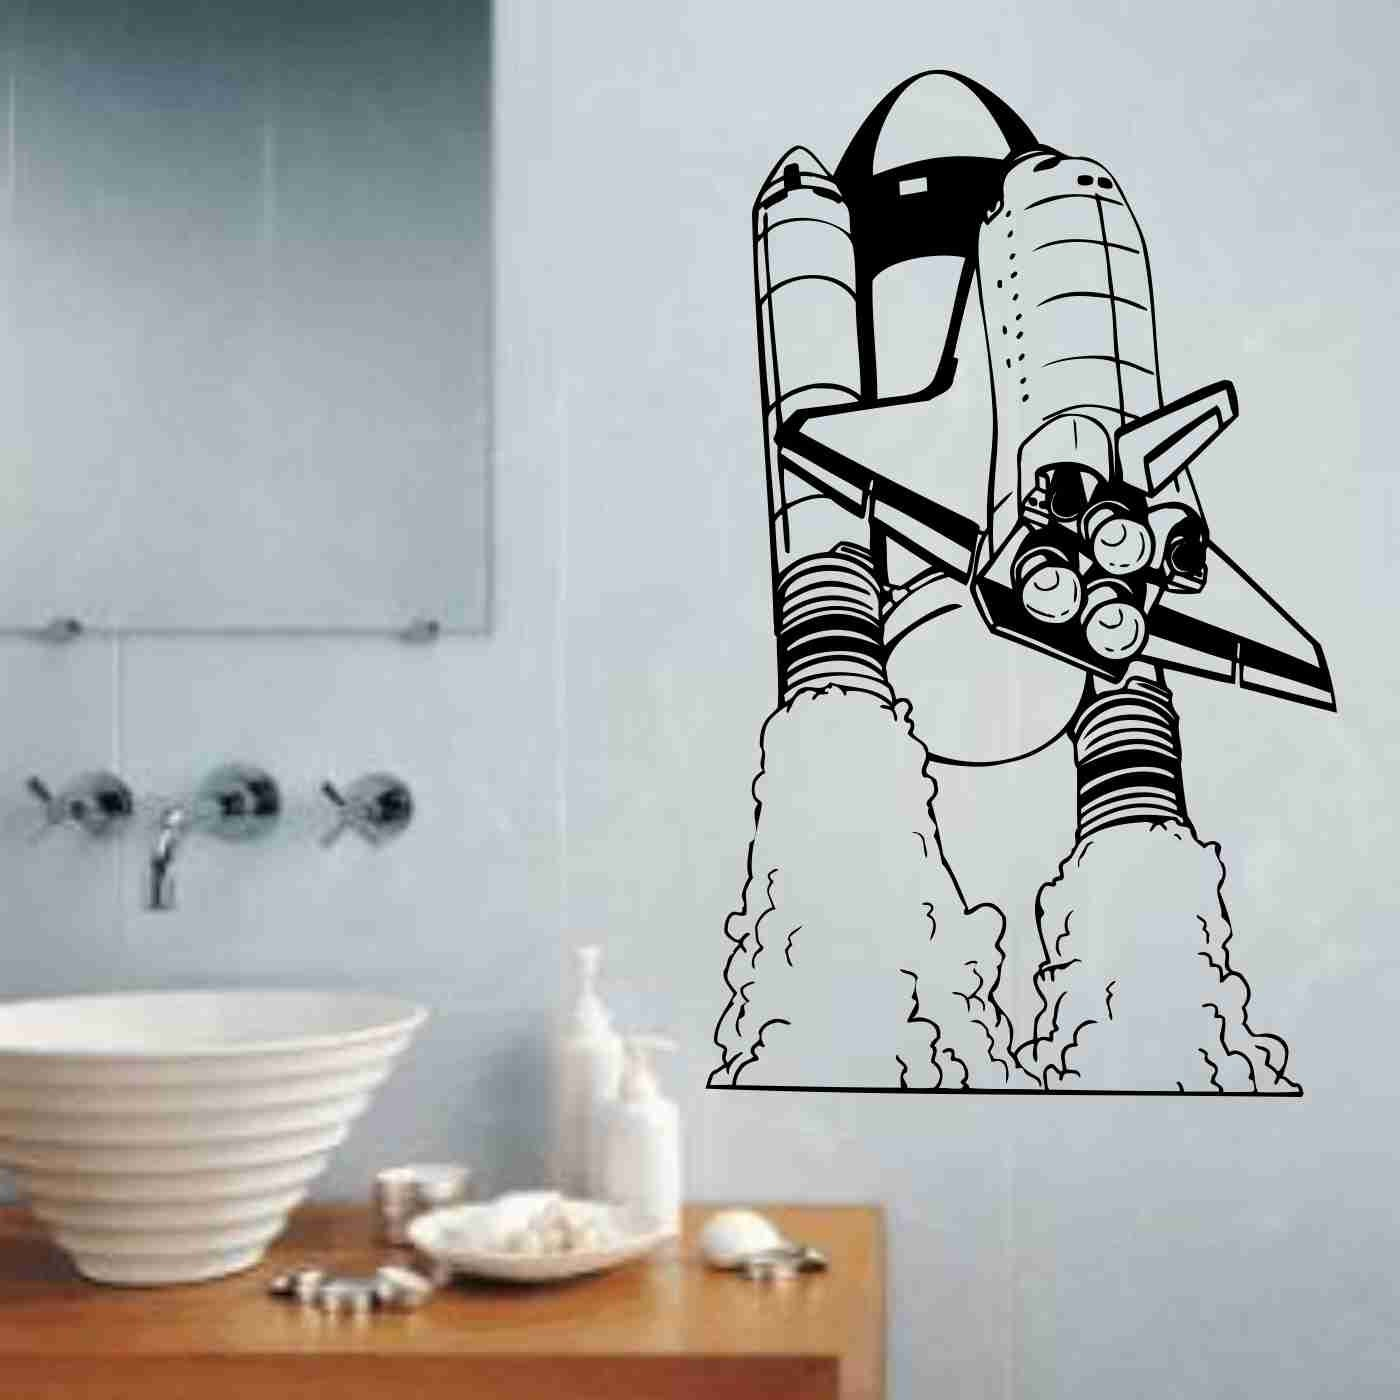 Space Shuttle Version 101 Vinyl Wall Decal Sticker Art Graphic